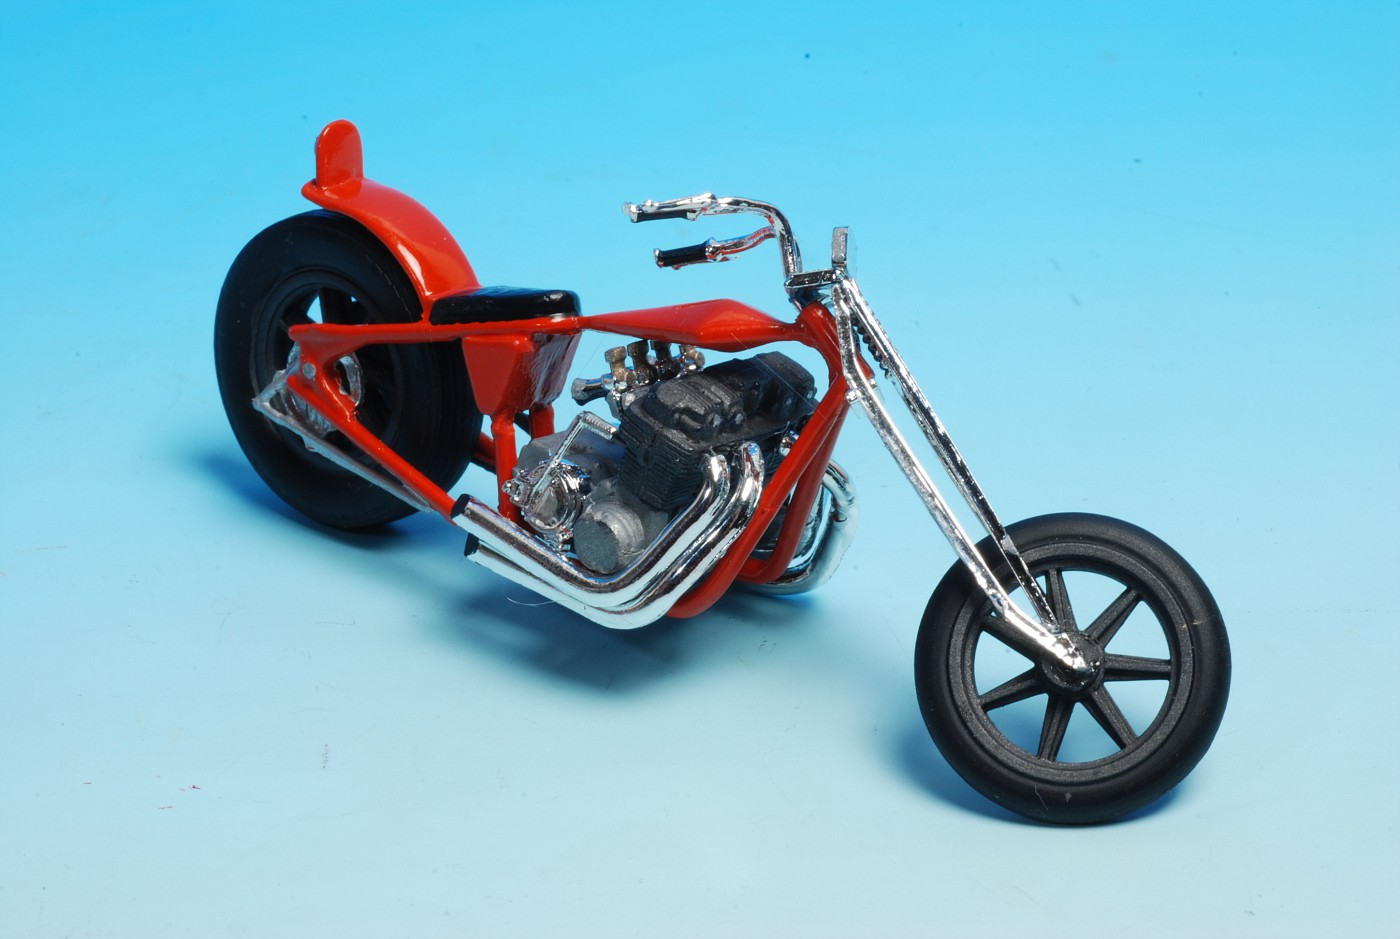 Hereu0027s The Monogram Cherry Bomb Harley Chopper. This One Is Built Box Stock  And Is A Good Comparision With The One Pictured Earlier In This Thread (by  ...